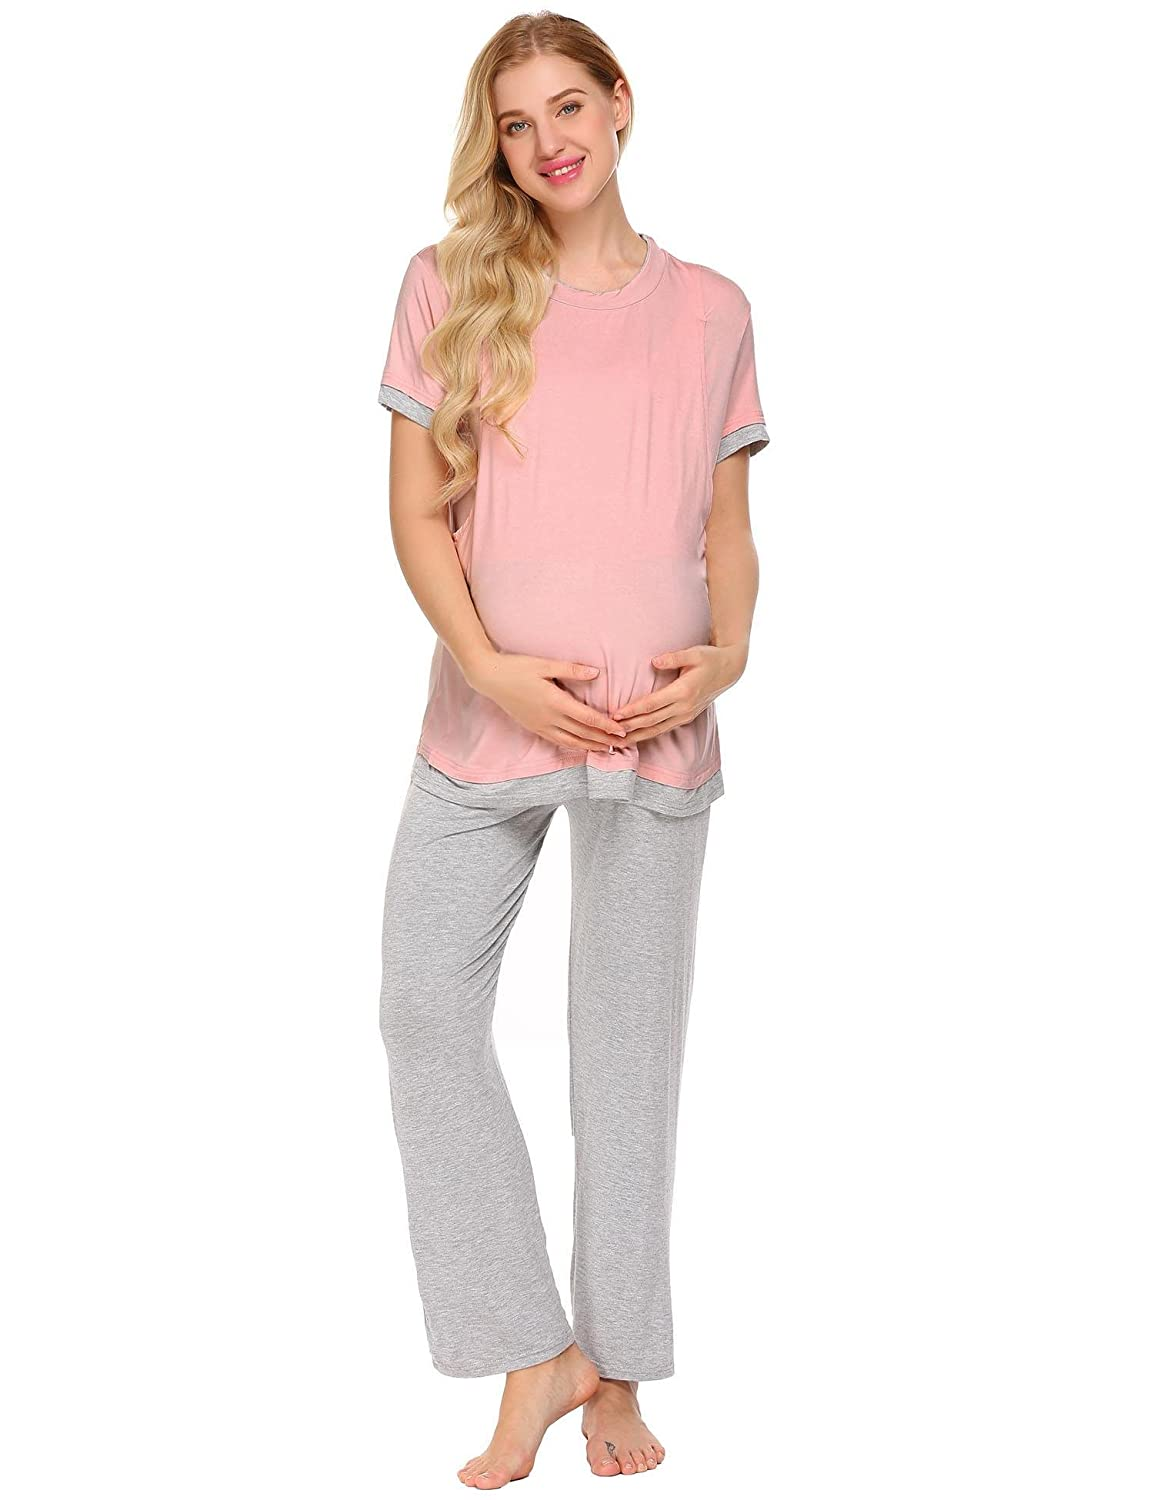 Adome Women Maternity Pajamas Set Short/Long Sleeve Breastfeeding Nursing Lounge Sleepwear